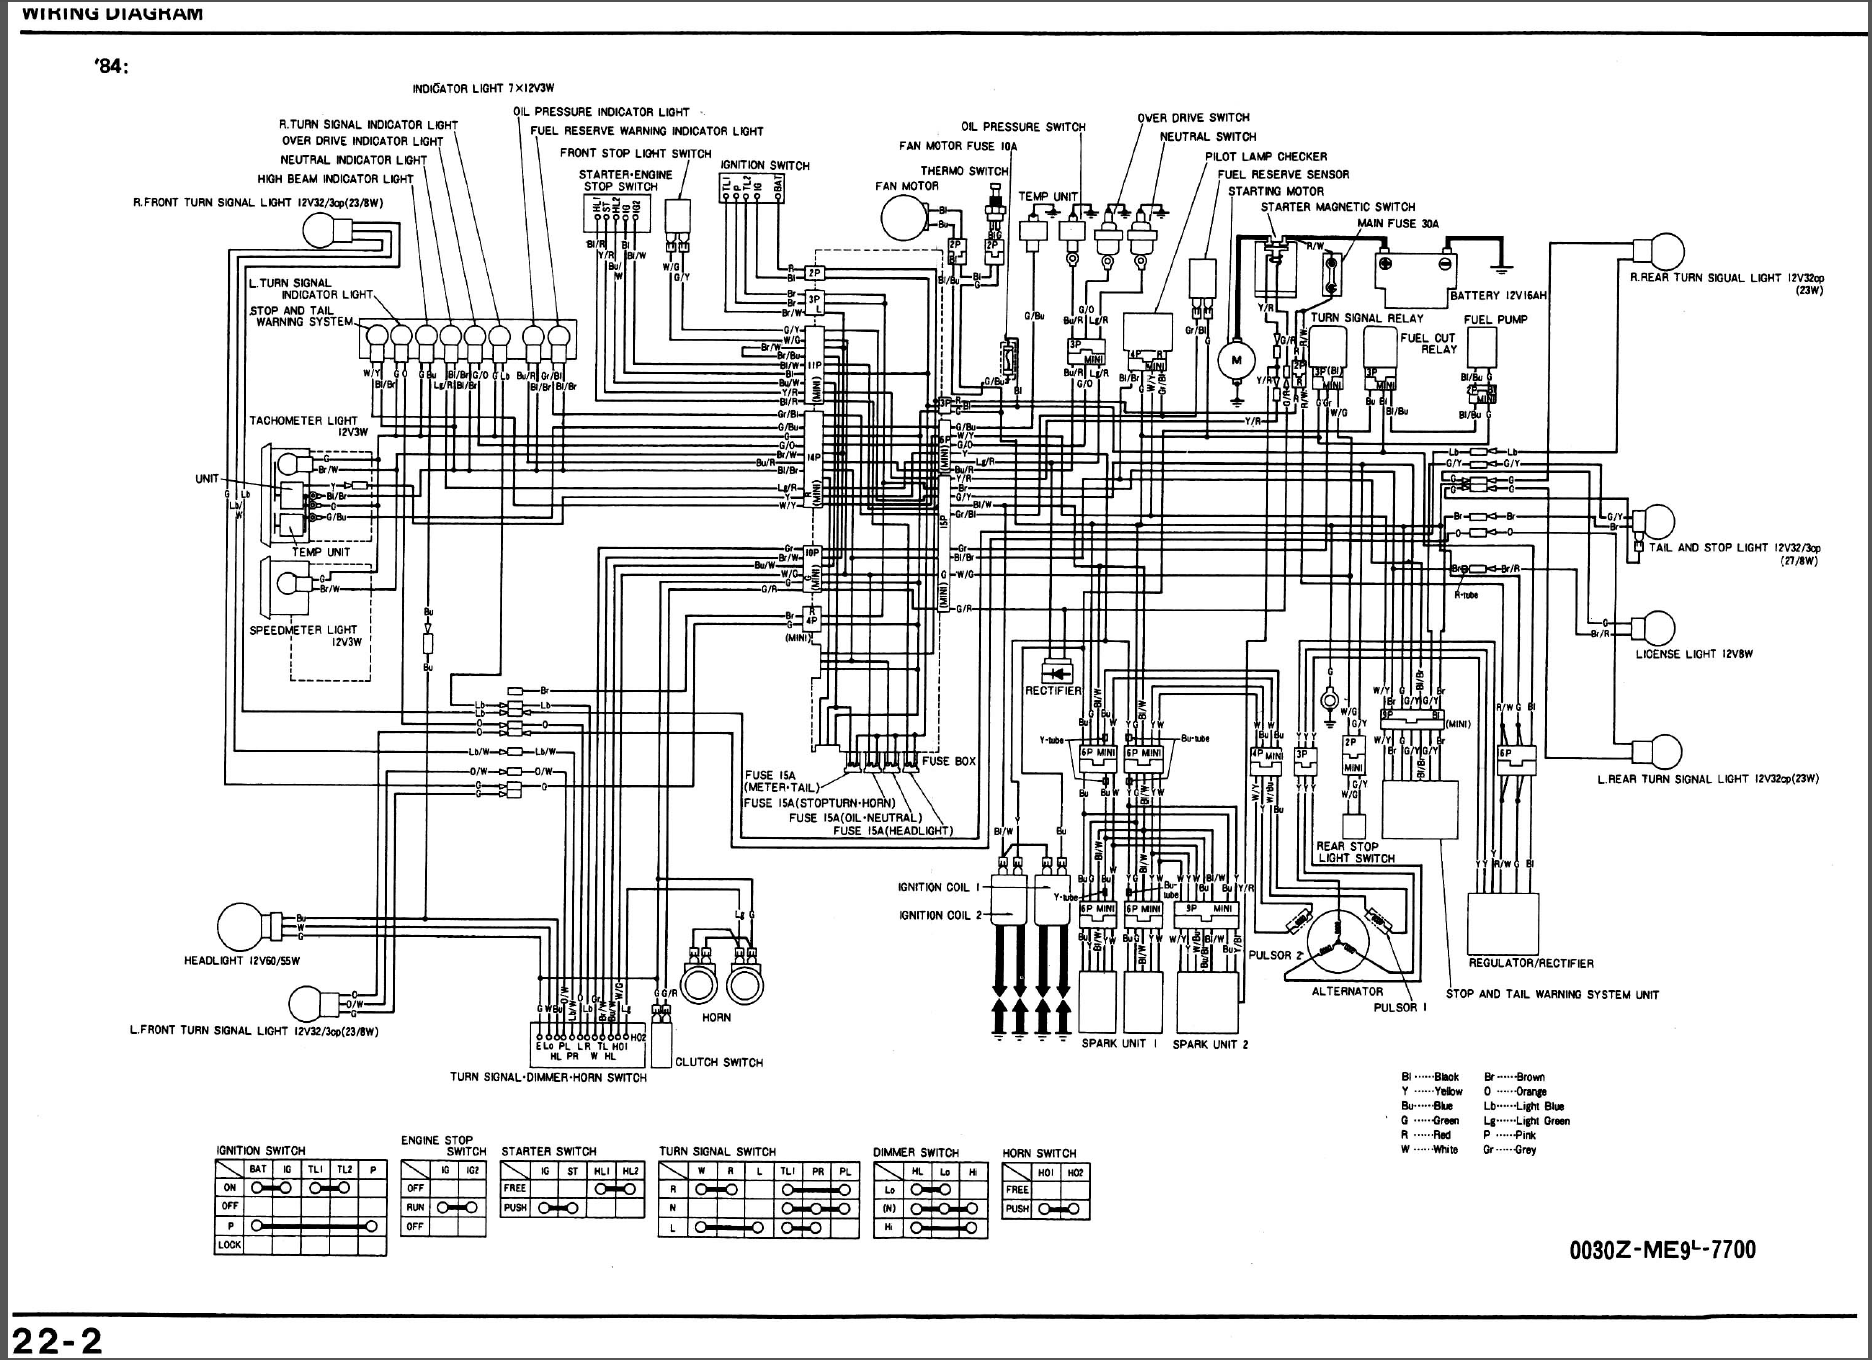 9265d1409799690 1984 honda shadow 700 wireing diagram b 1984 honda shadow 700 honda shadow wiring diagram at bakdesigns.co